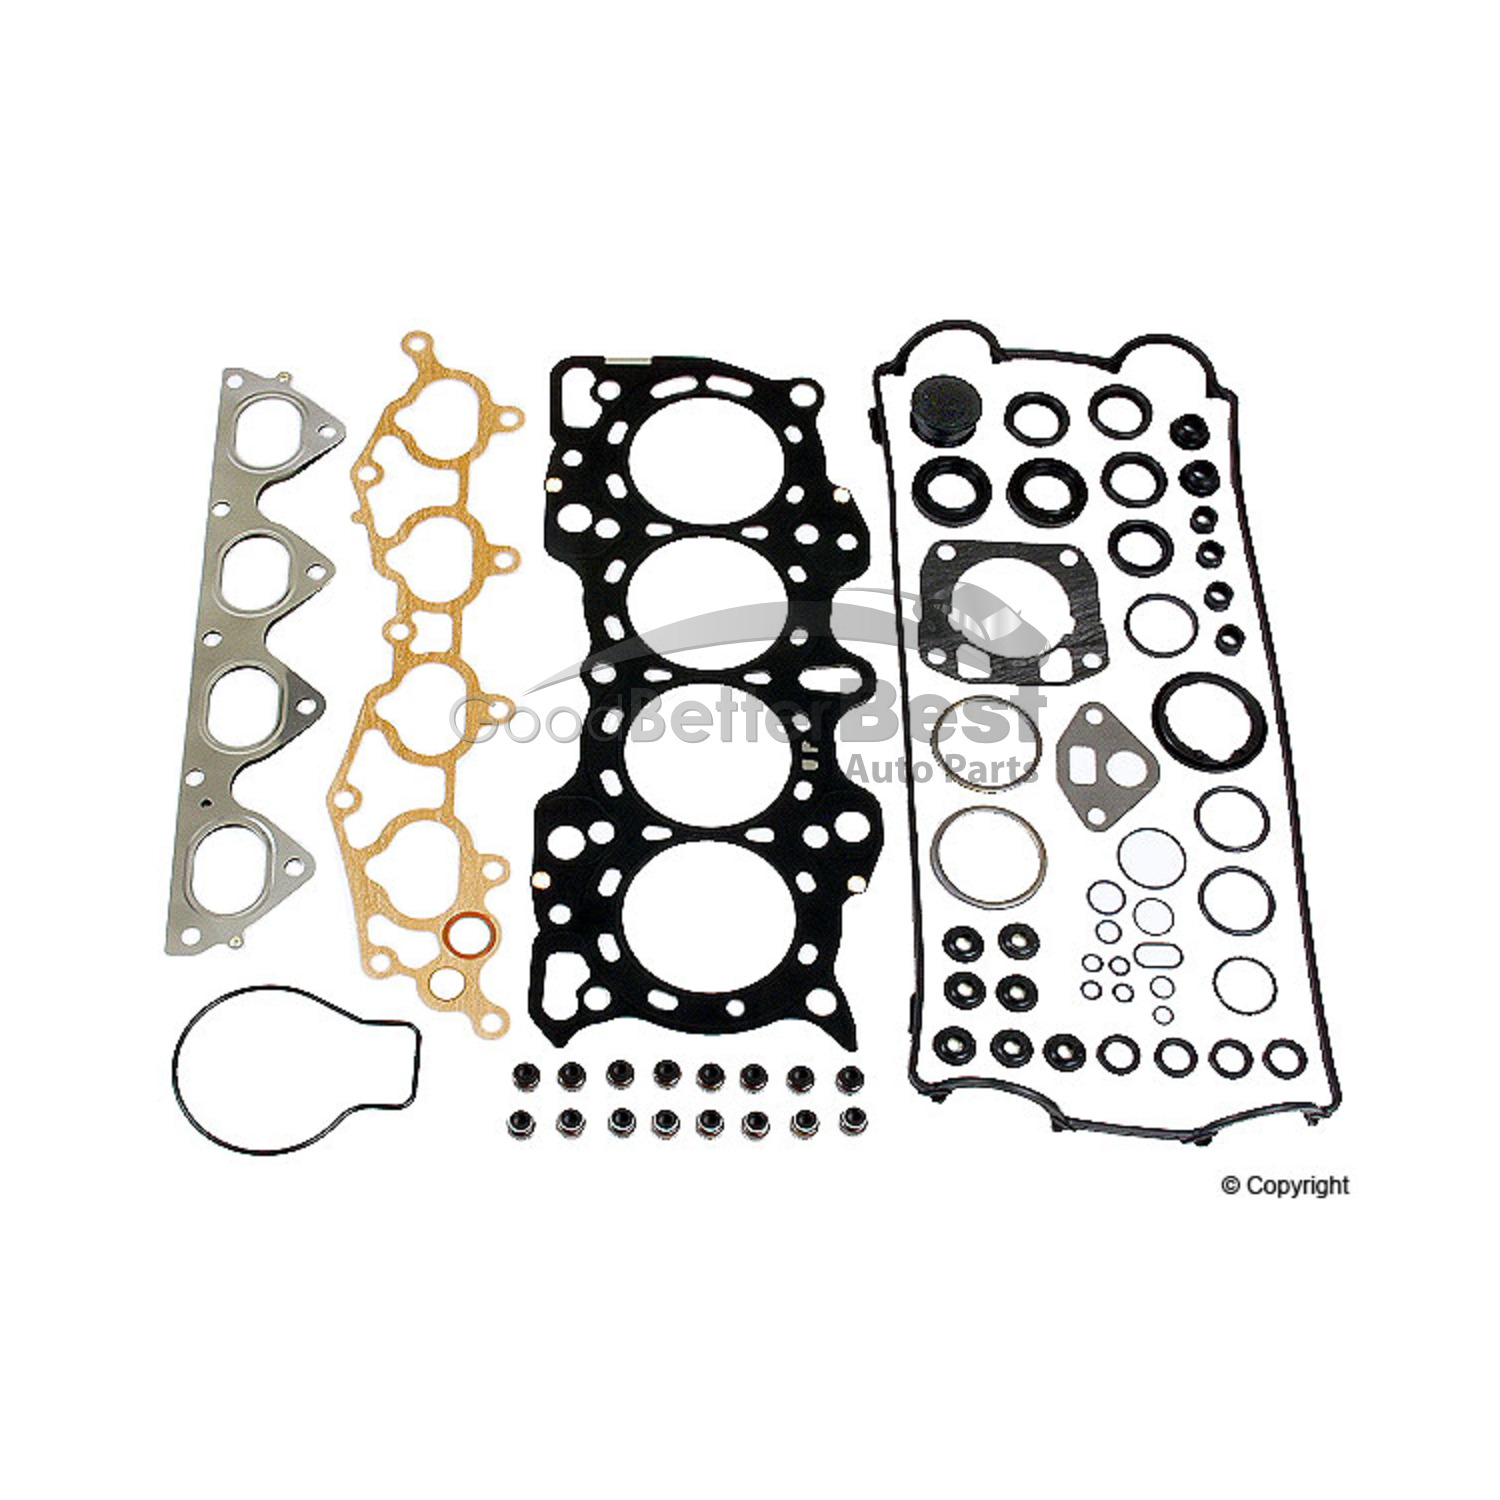 New Stone Engine Cylinder Head Gasket Set Jhs Us